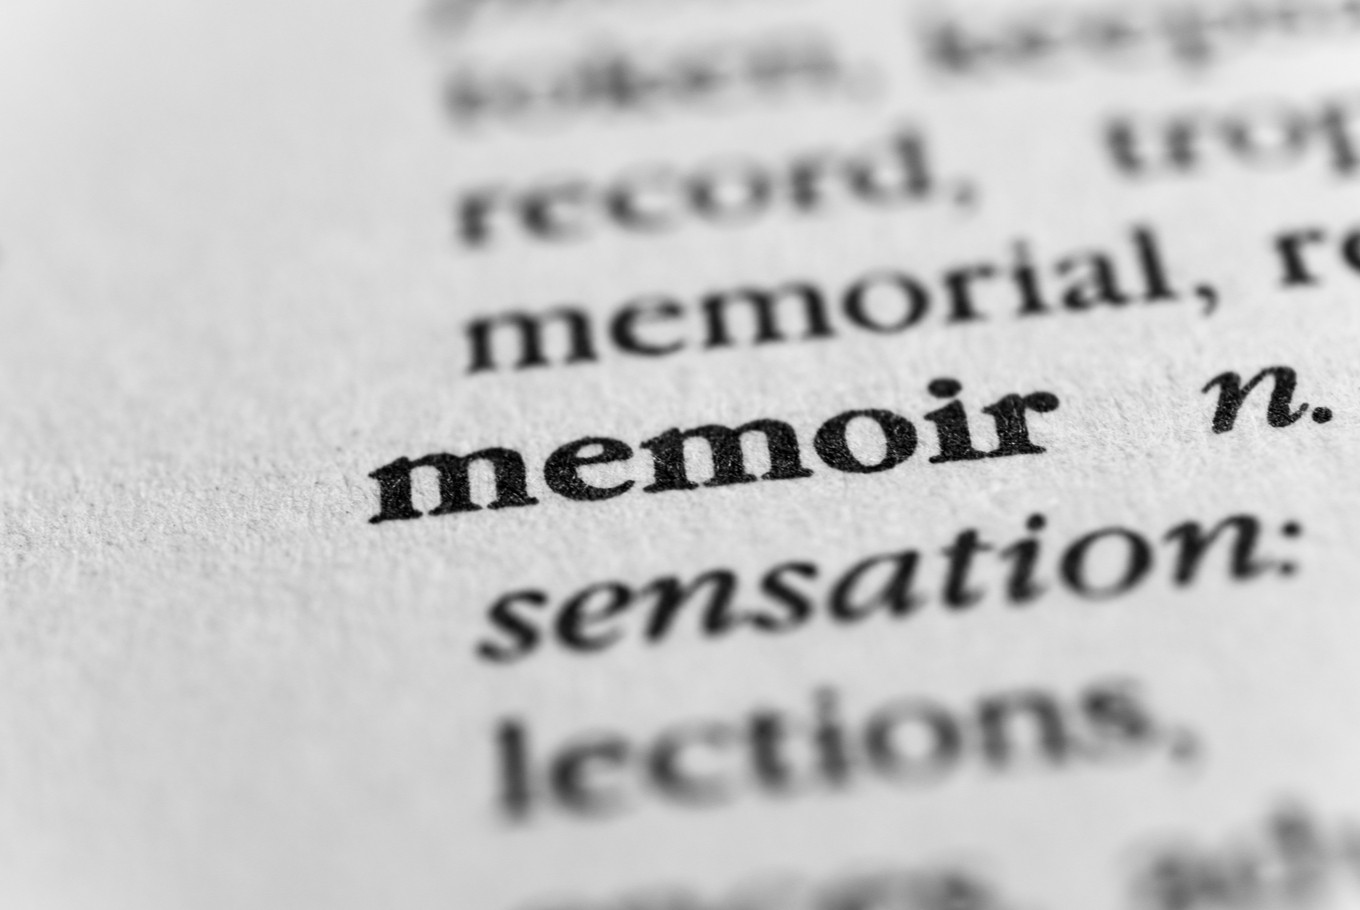 Essay: The (Quest)ion of Memory